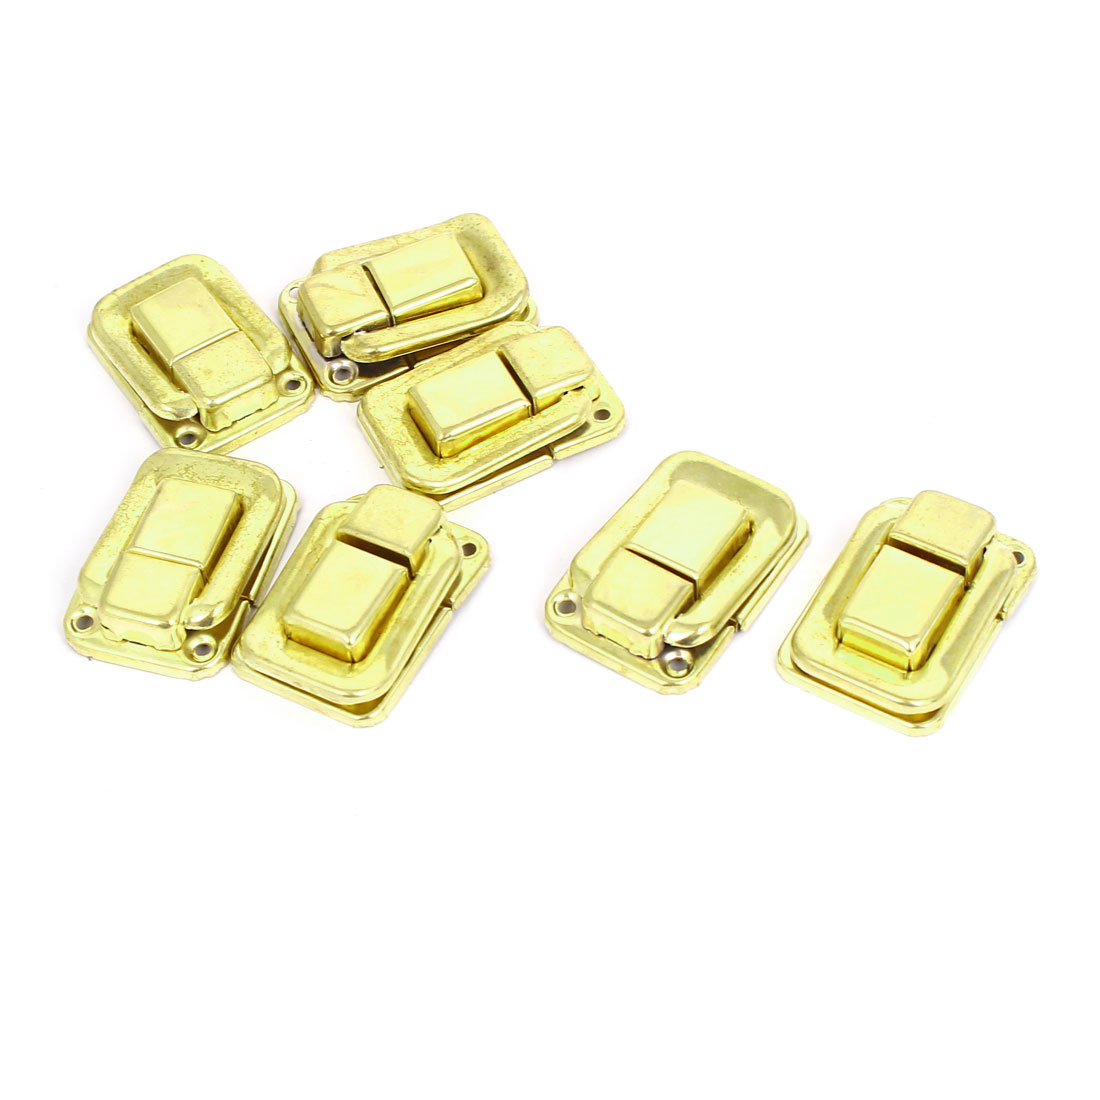 Drawer Case Fittings Hardware Toggle Latch Hasp Gold Tone 36mm Length 7pcs